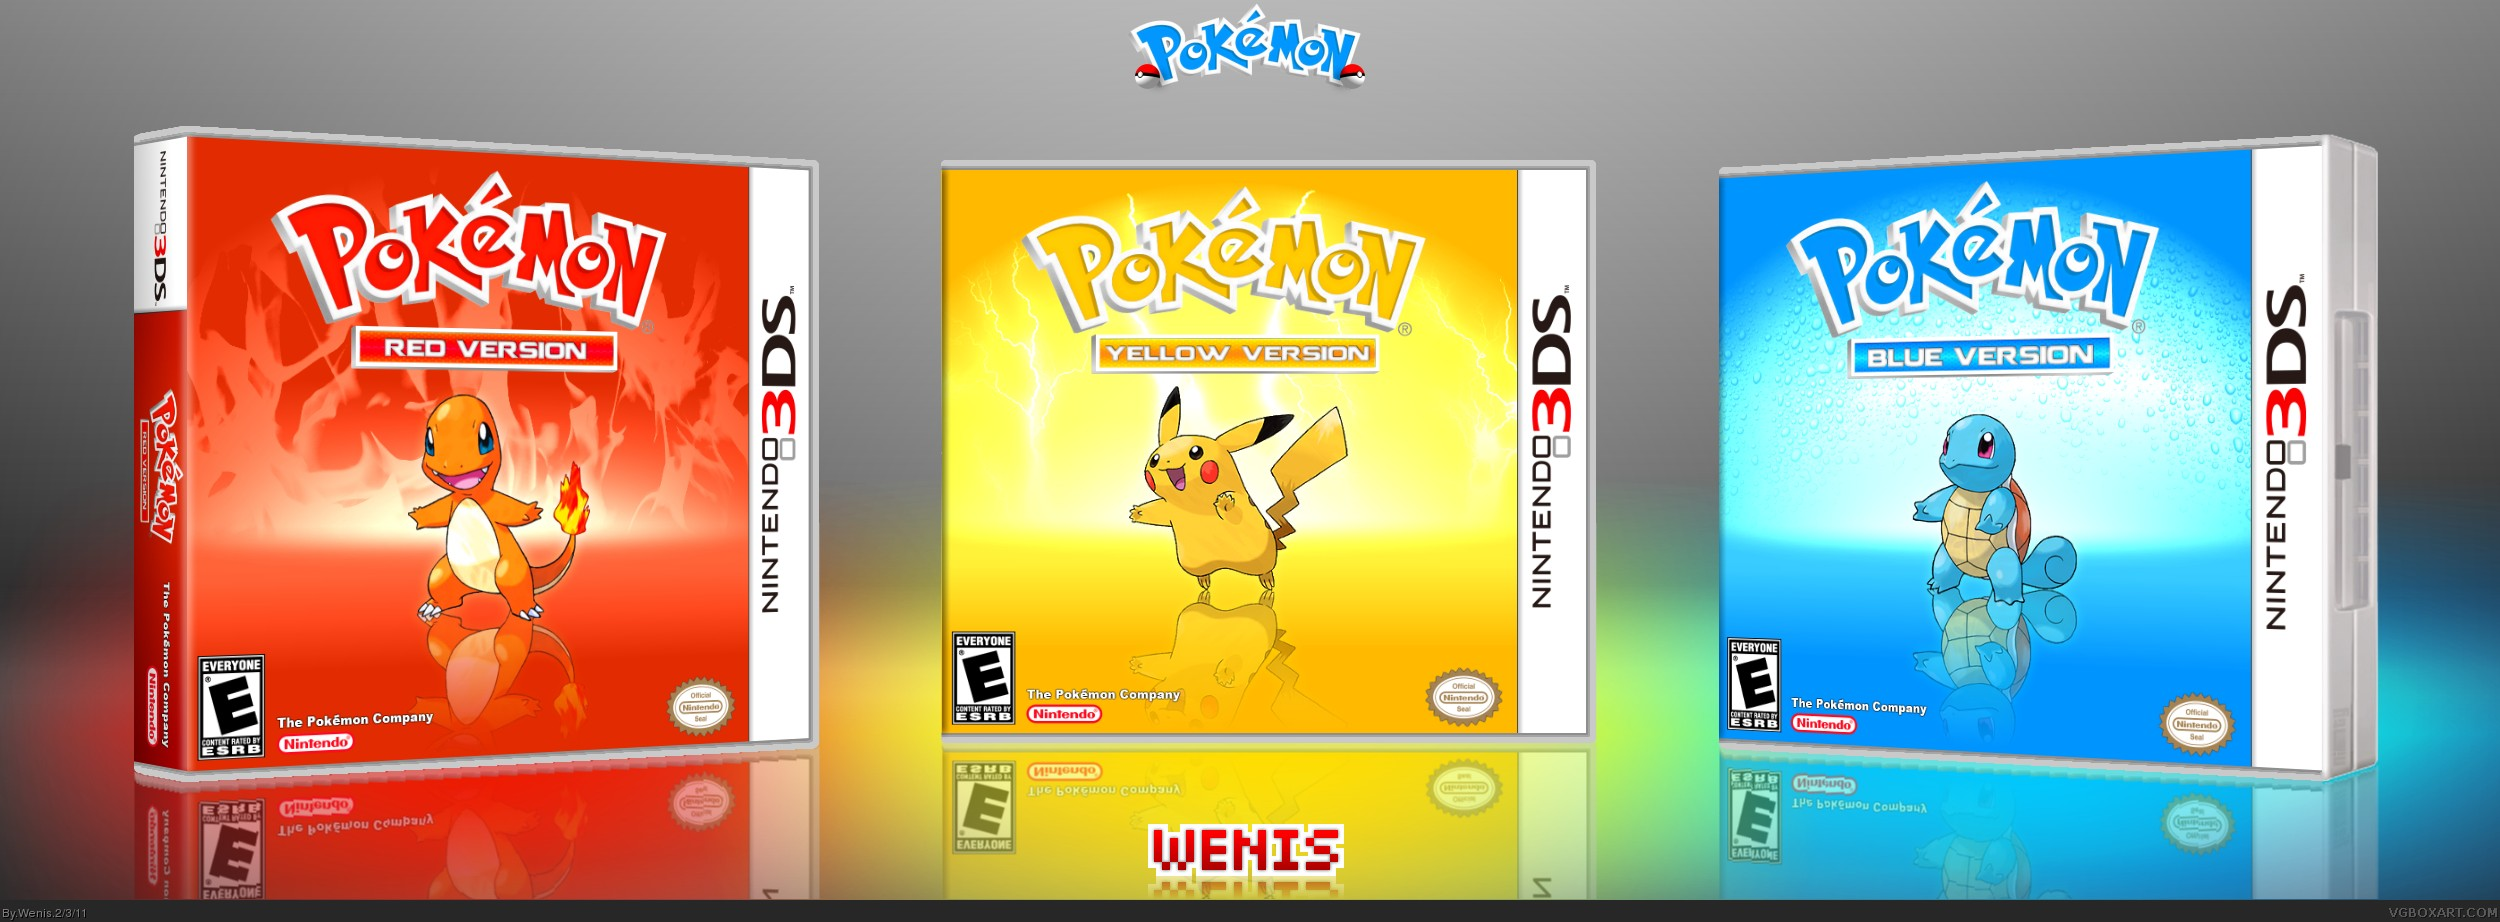 Viewing full size Pokemon Red Yellow & Blue box cover